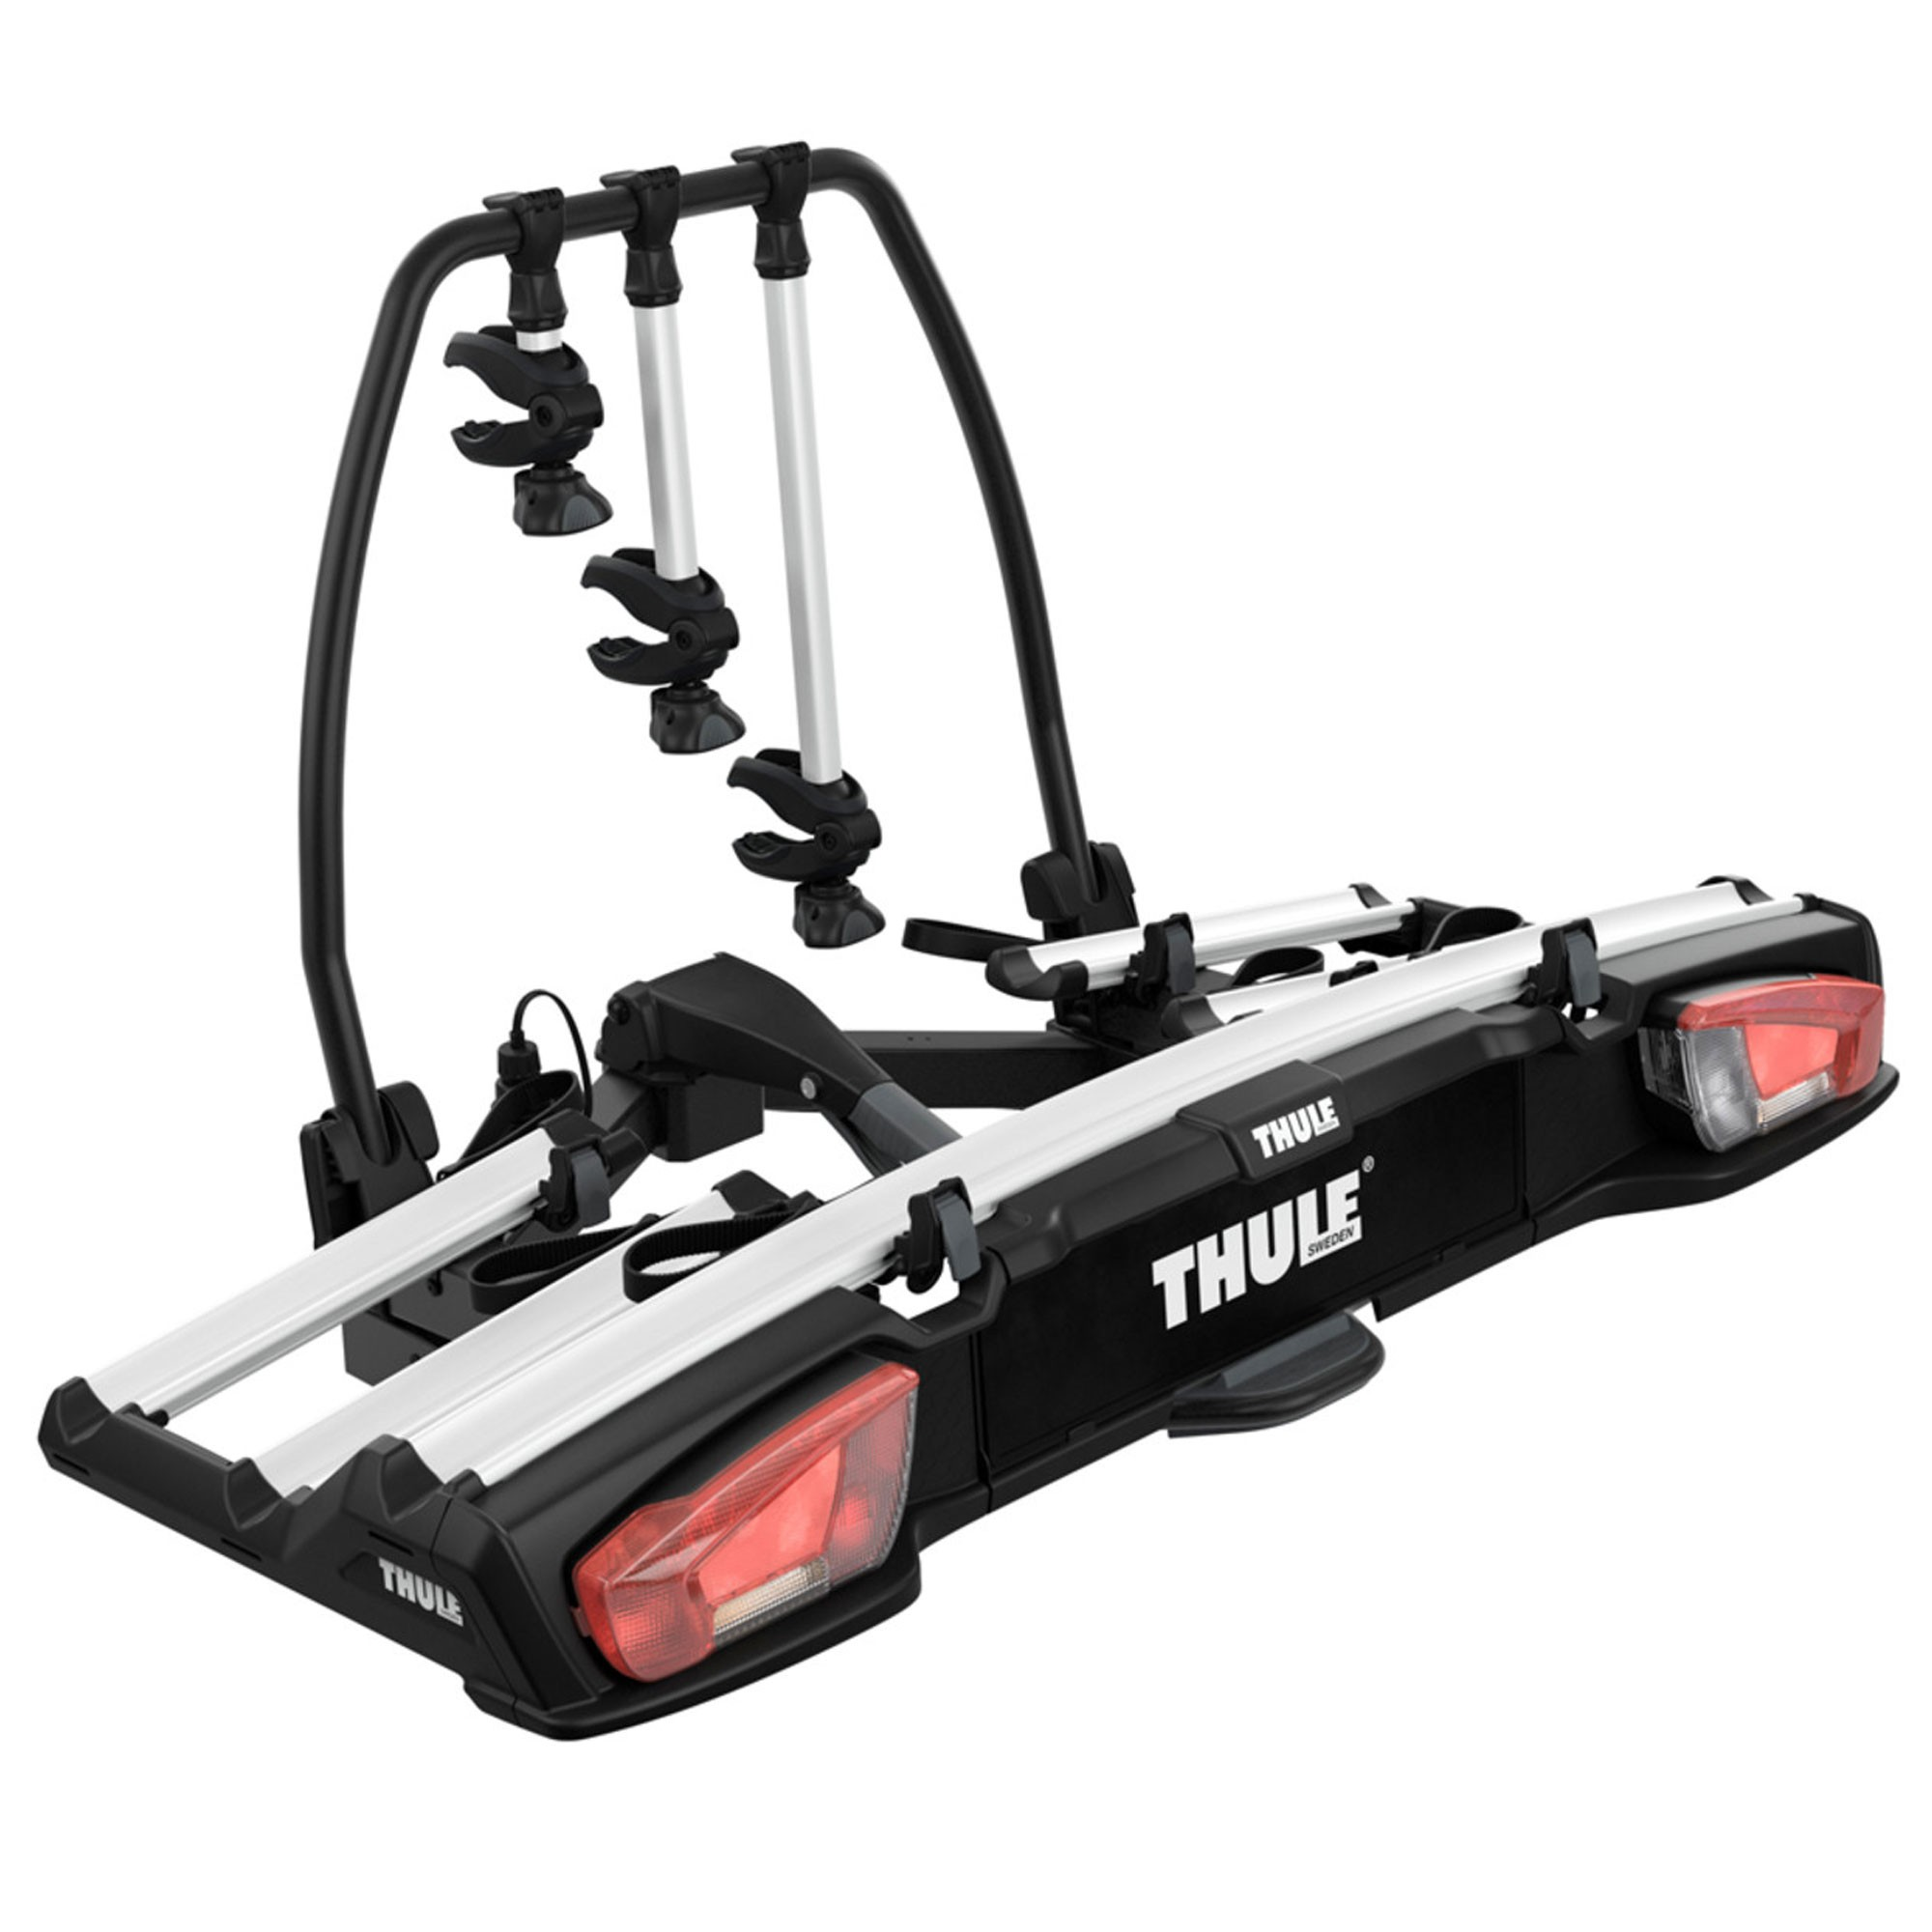 Thule 939 VeloSpace XT 3-bike Towball Carrier | Sigma Sports